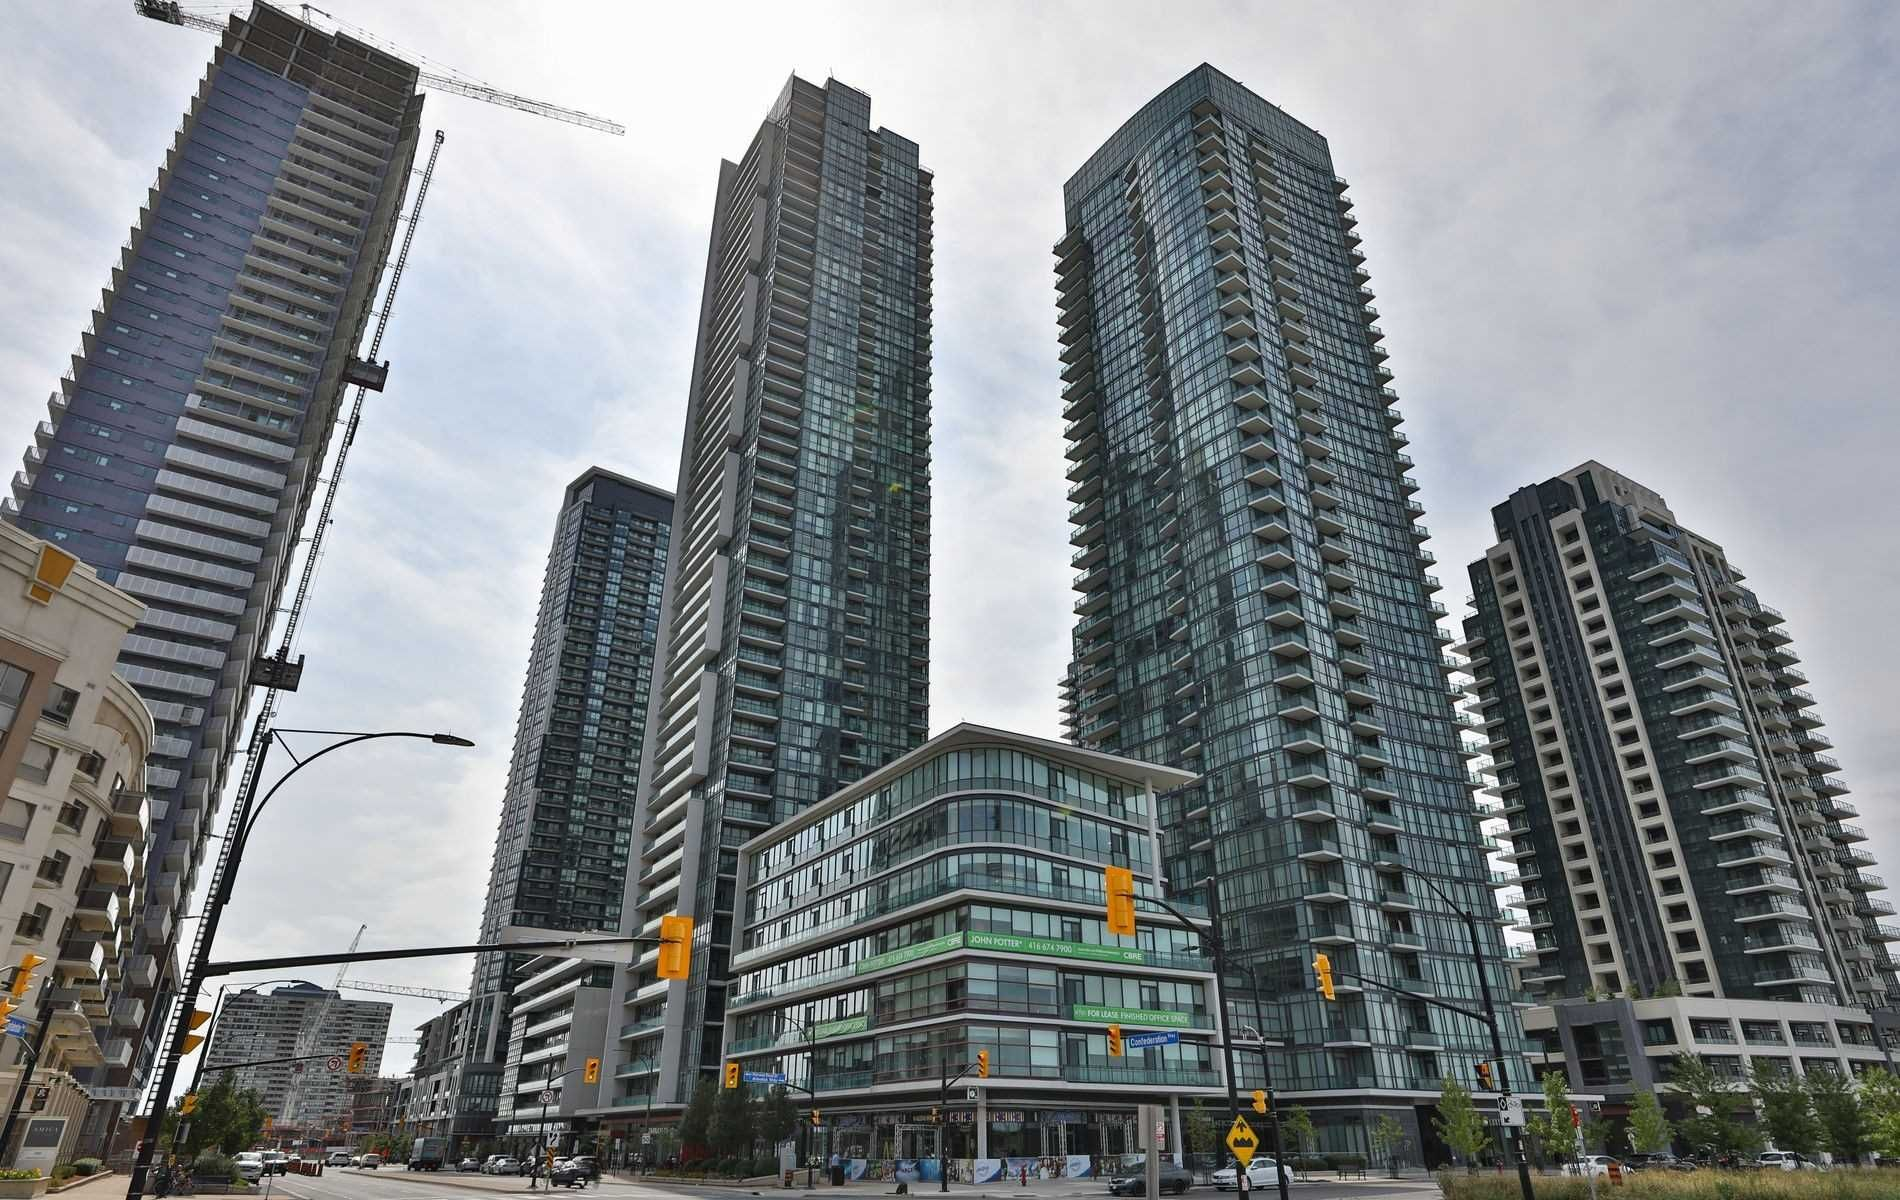 Main Photo: 208 4070 Confederation Parkway in Mississauga: City Centre Condo for sale : MLS®# W4933773